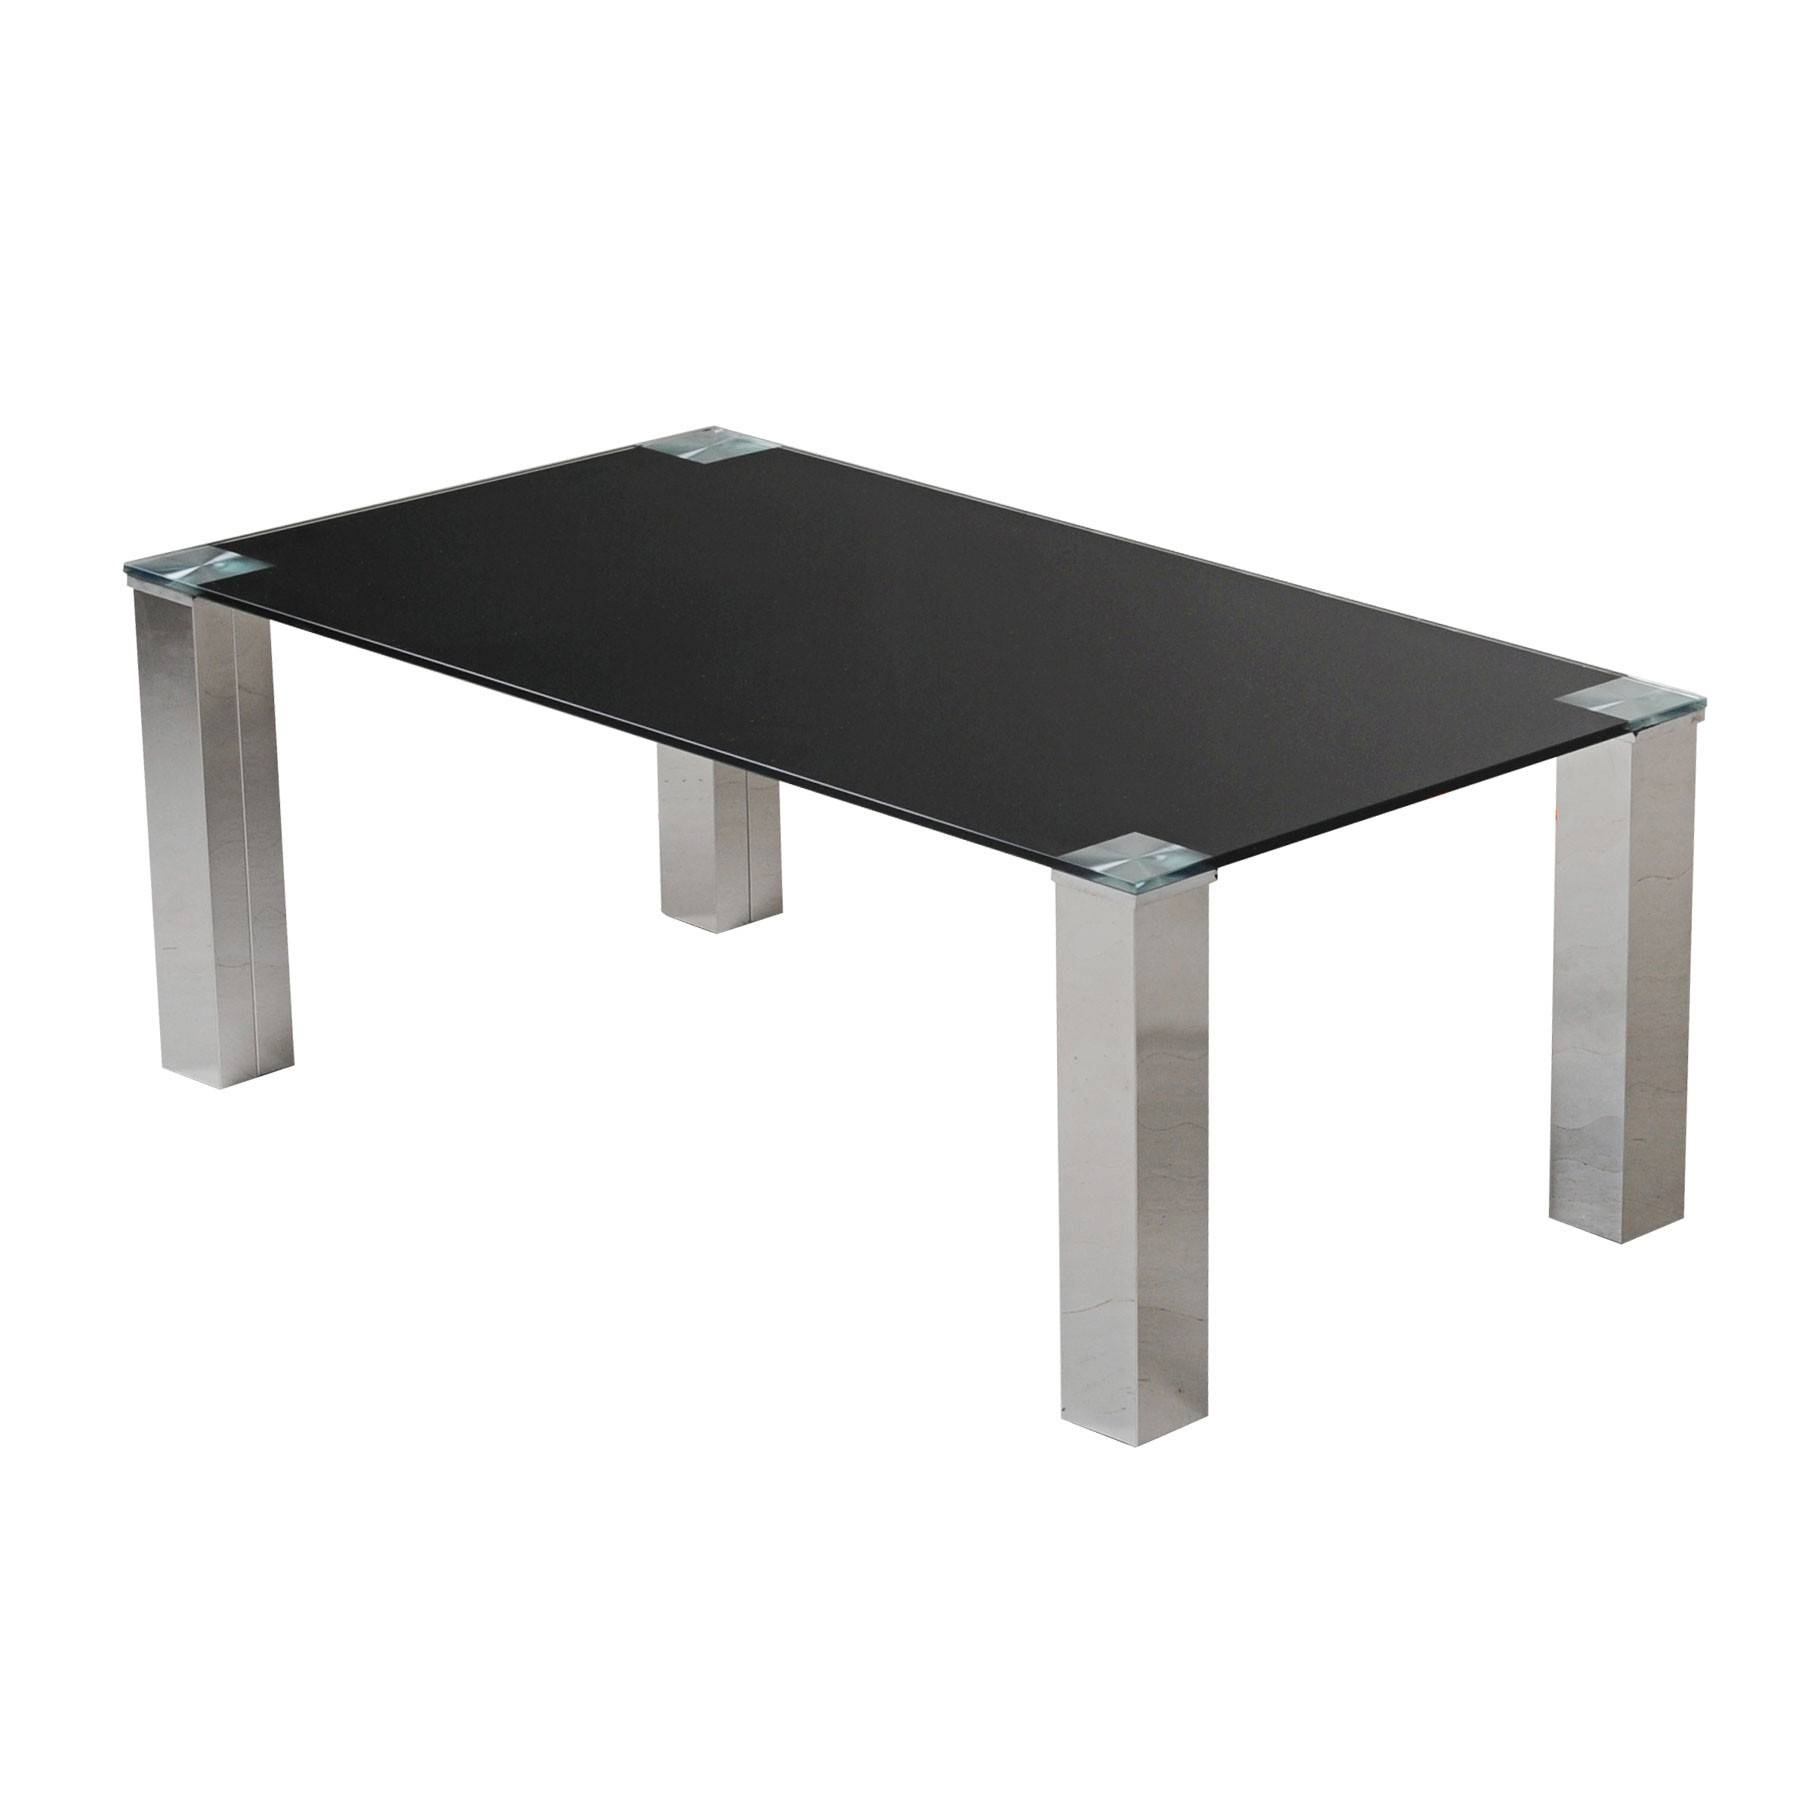 Square black glass coffee table - Black Glass Coffee Table Regarding Dark Glass Coffee Tables Image 2 Of 30